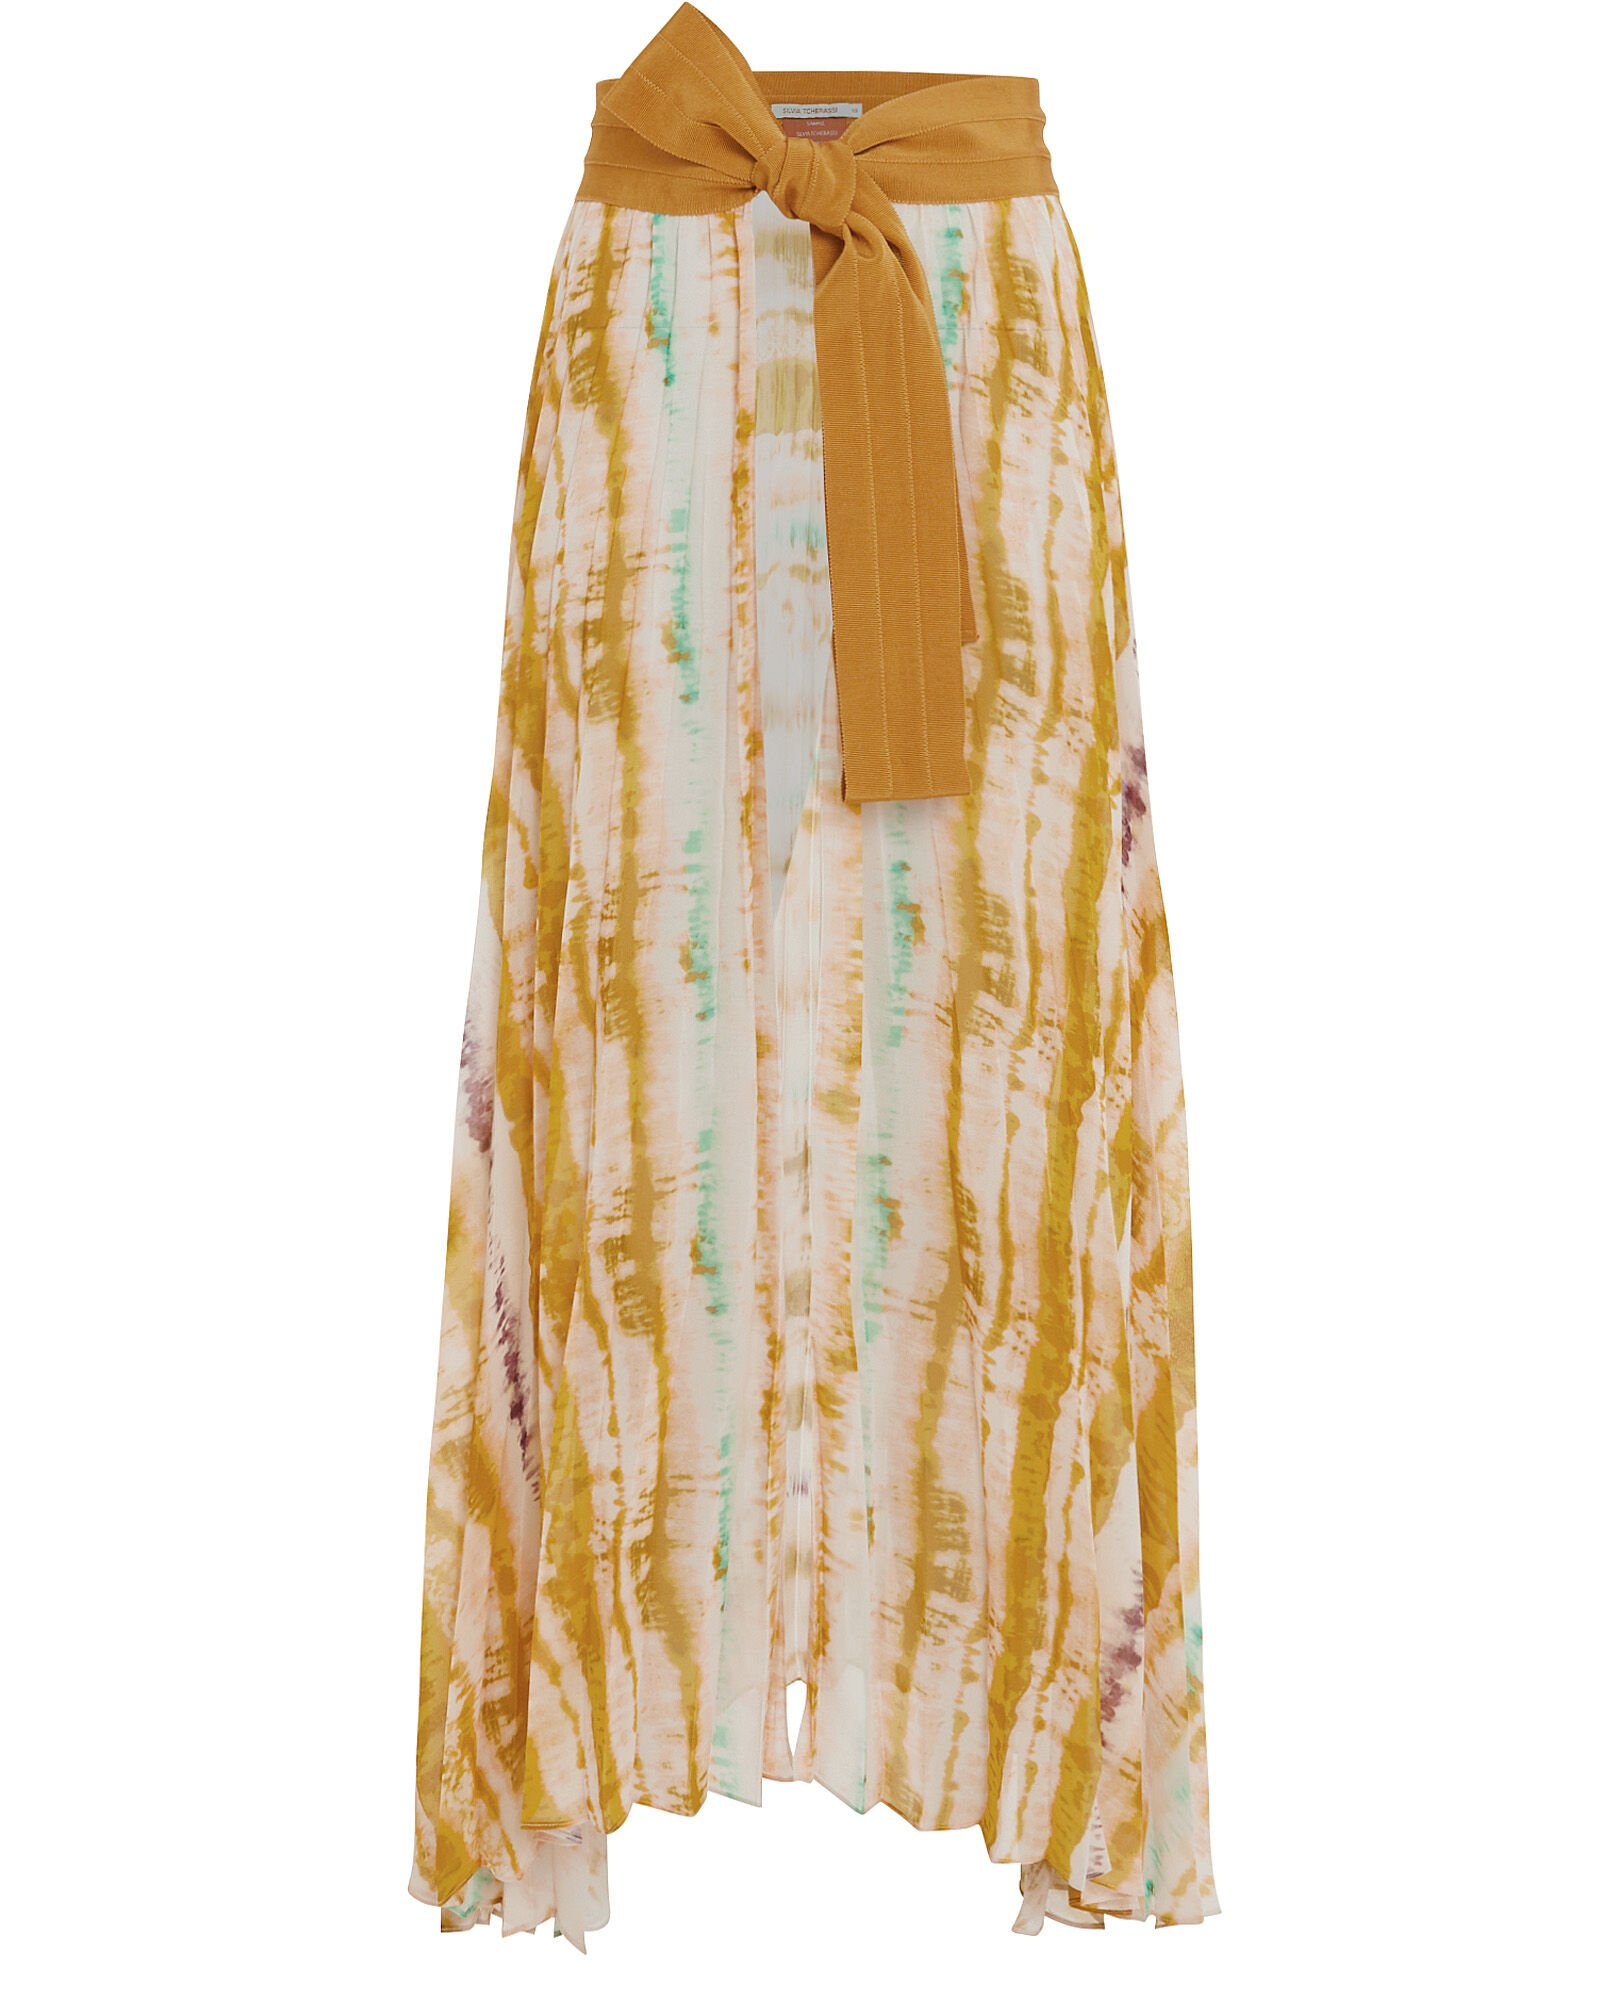 Blanche Watercolor Midi Apron Skirt, YELLOW, hi-res